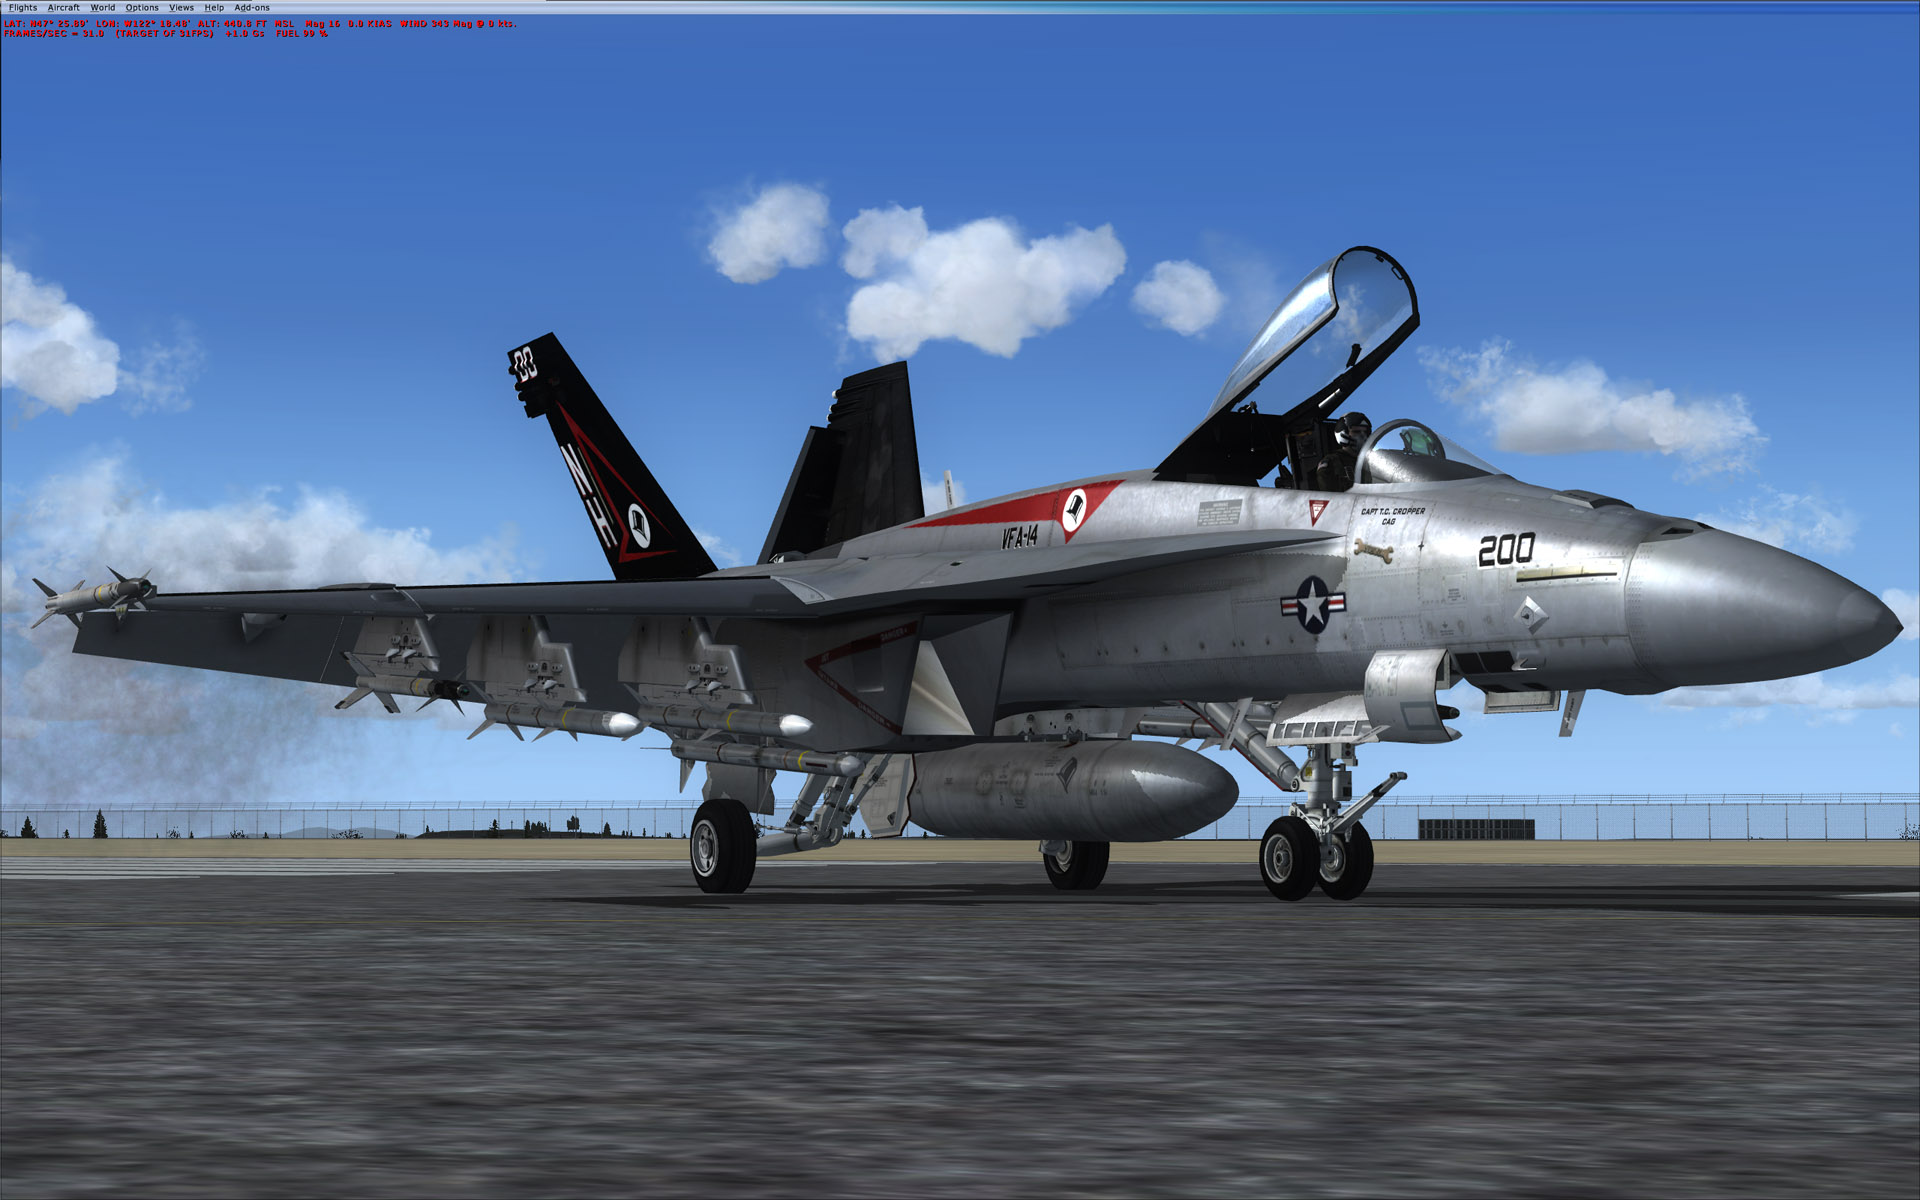 Fa 18 Hornet Download Fsx Planes - bilinoa